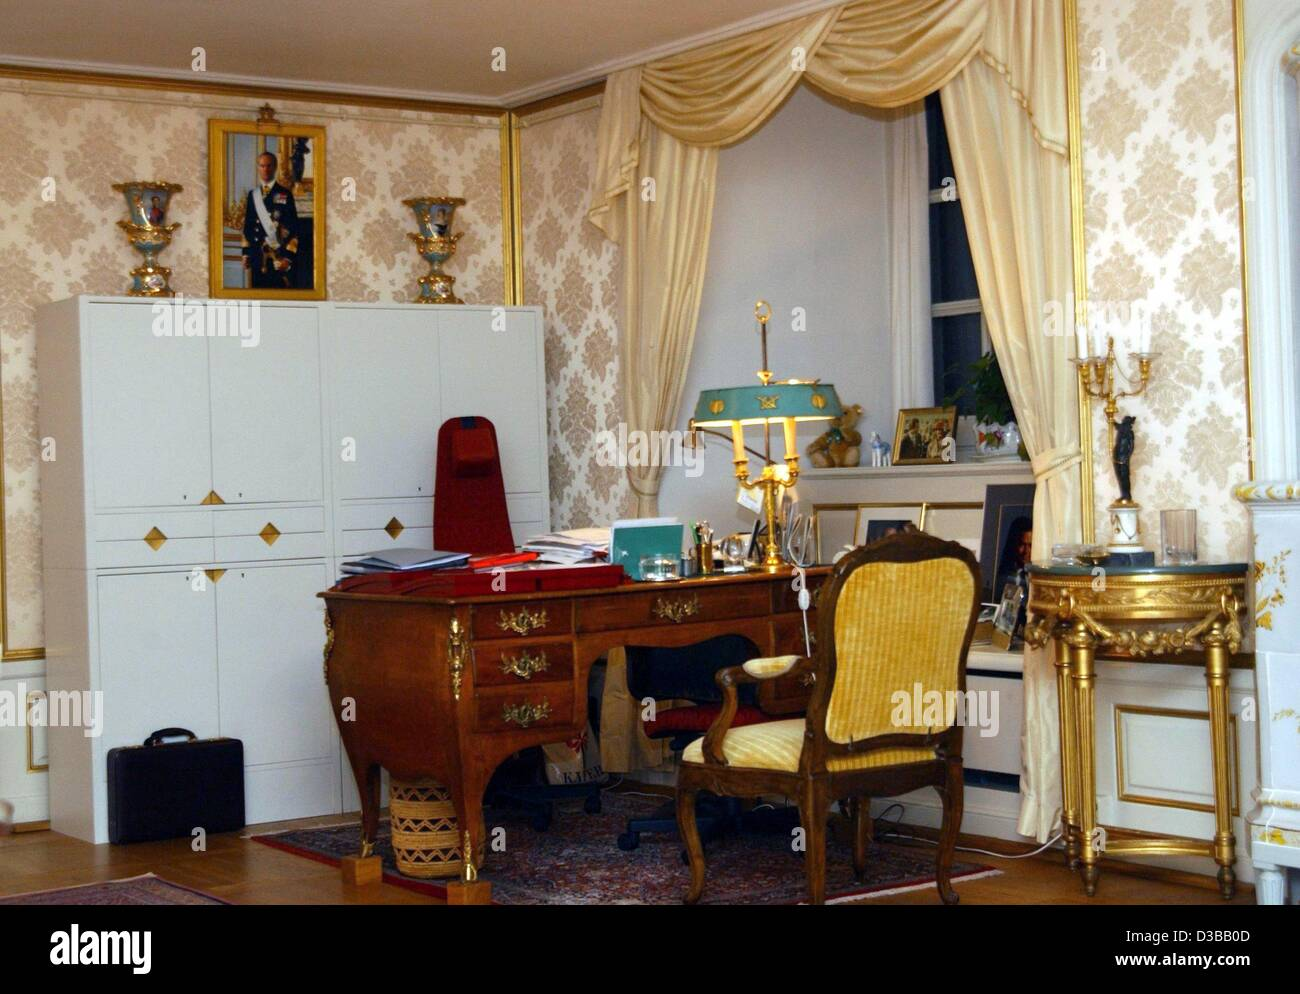 (dpa) - A view of the desk in the office of Queen Silvia of Sweden in the royal palace in Stockholm, 14 November - Stock Image